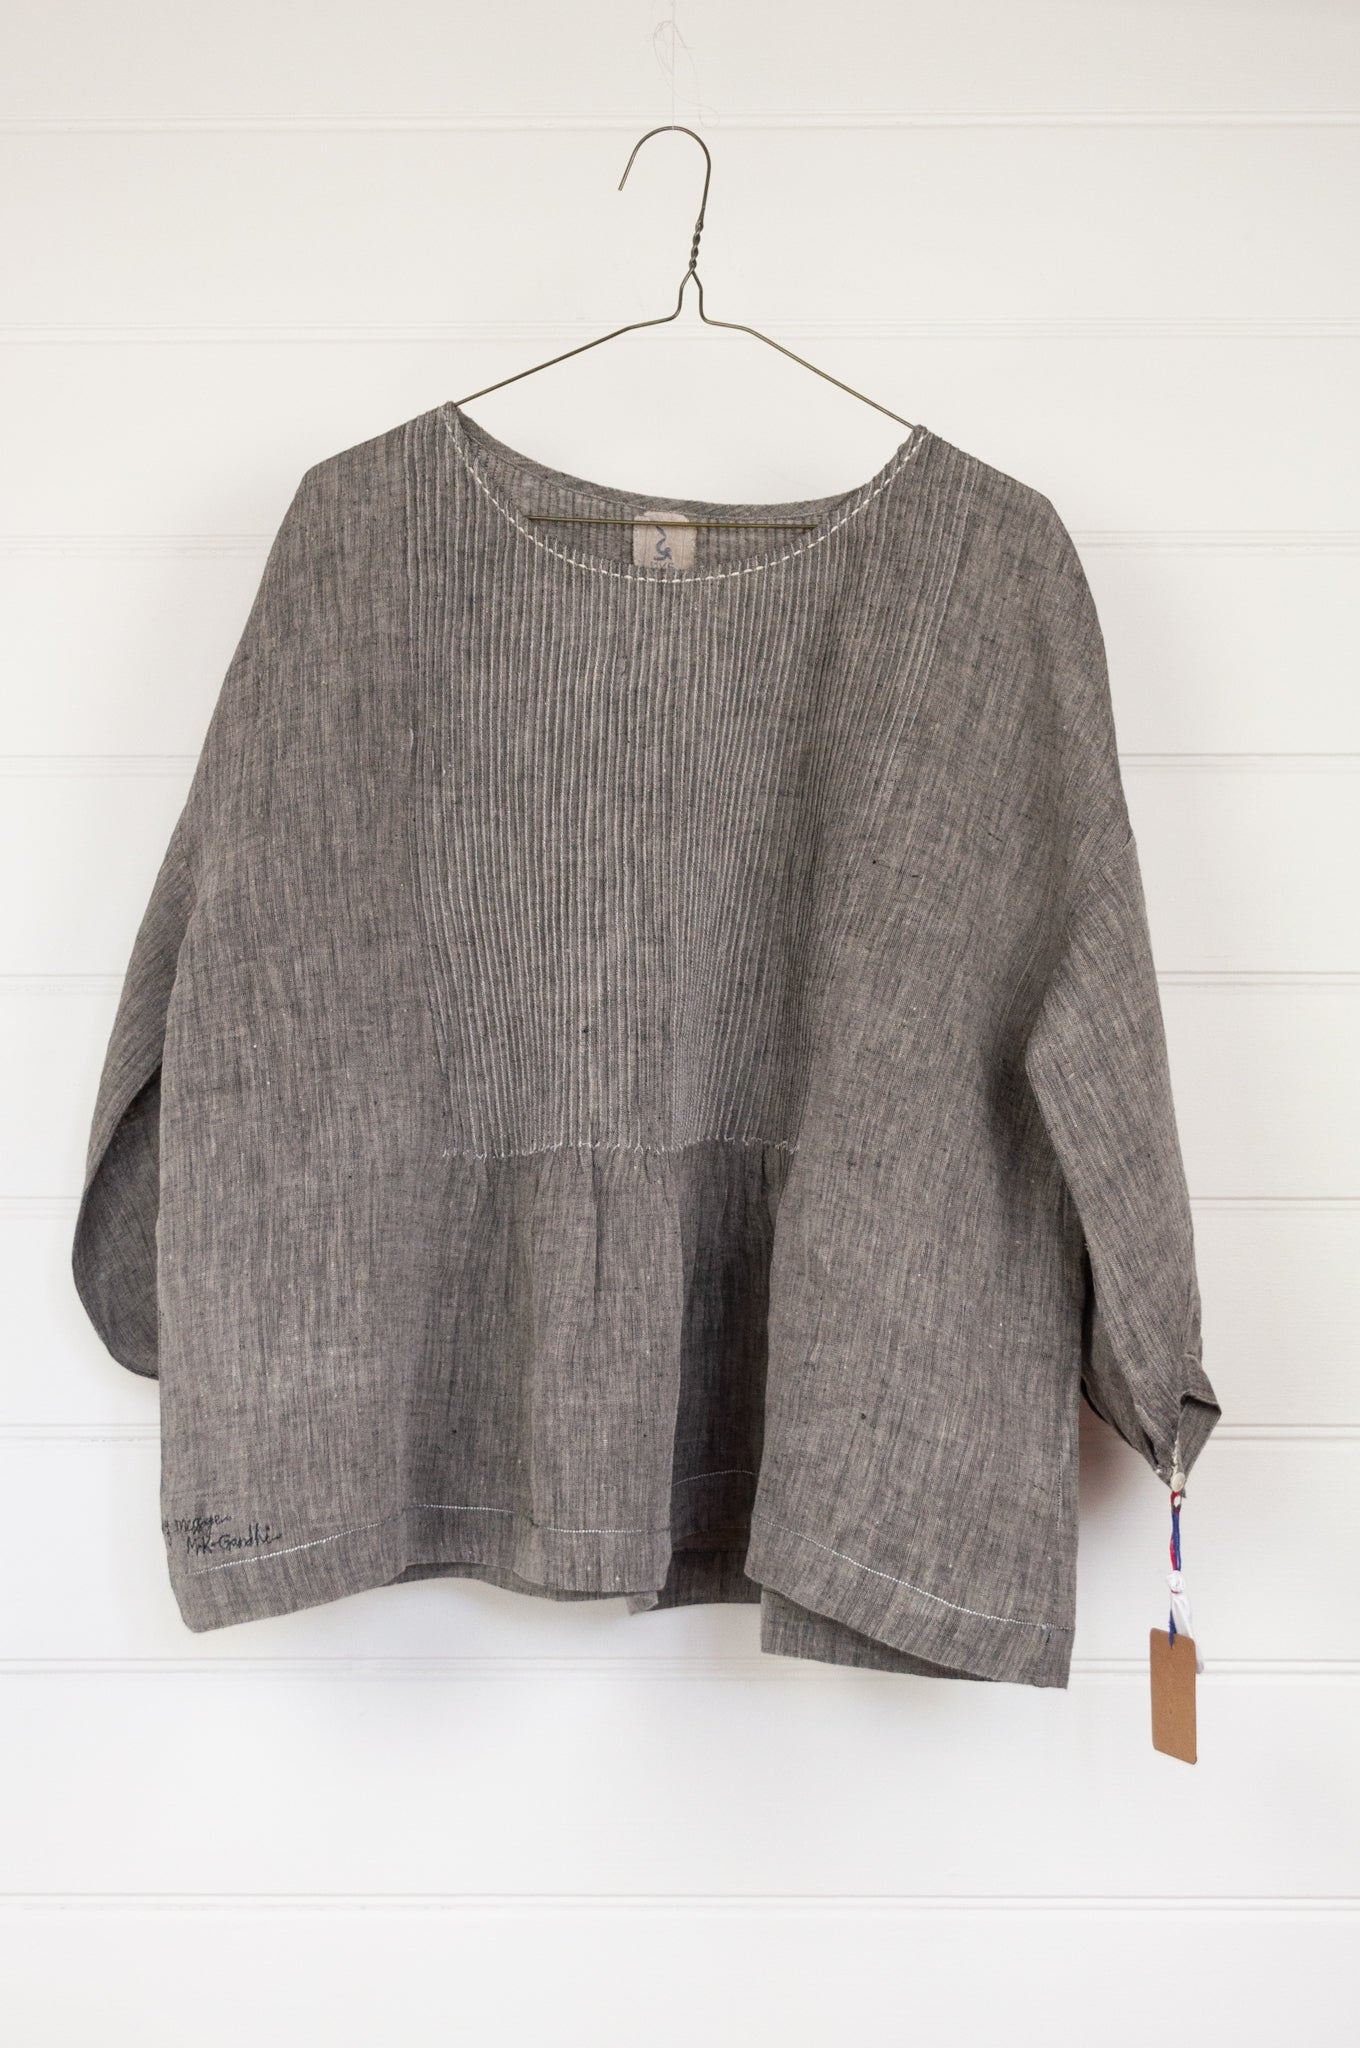 Dve Collection Anisha top in black grey chambray linen, pin tucked bodice front and back, three quarter sleeve. One size.